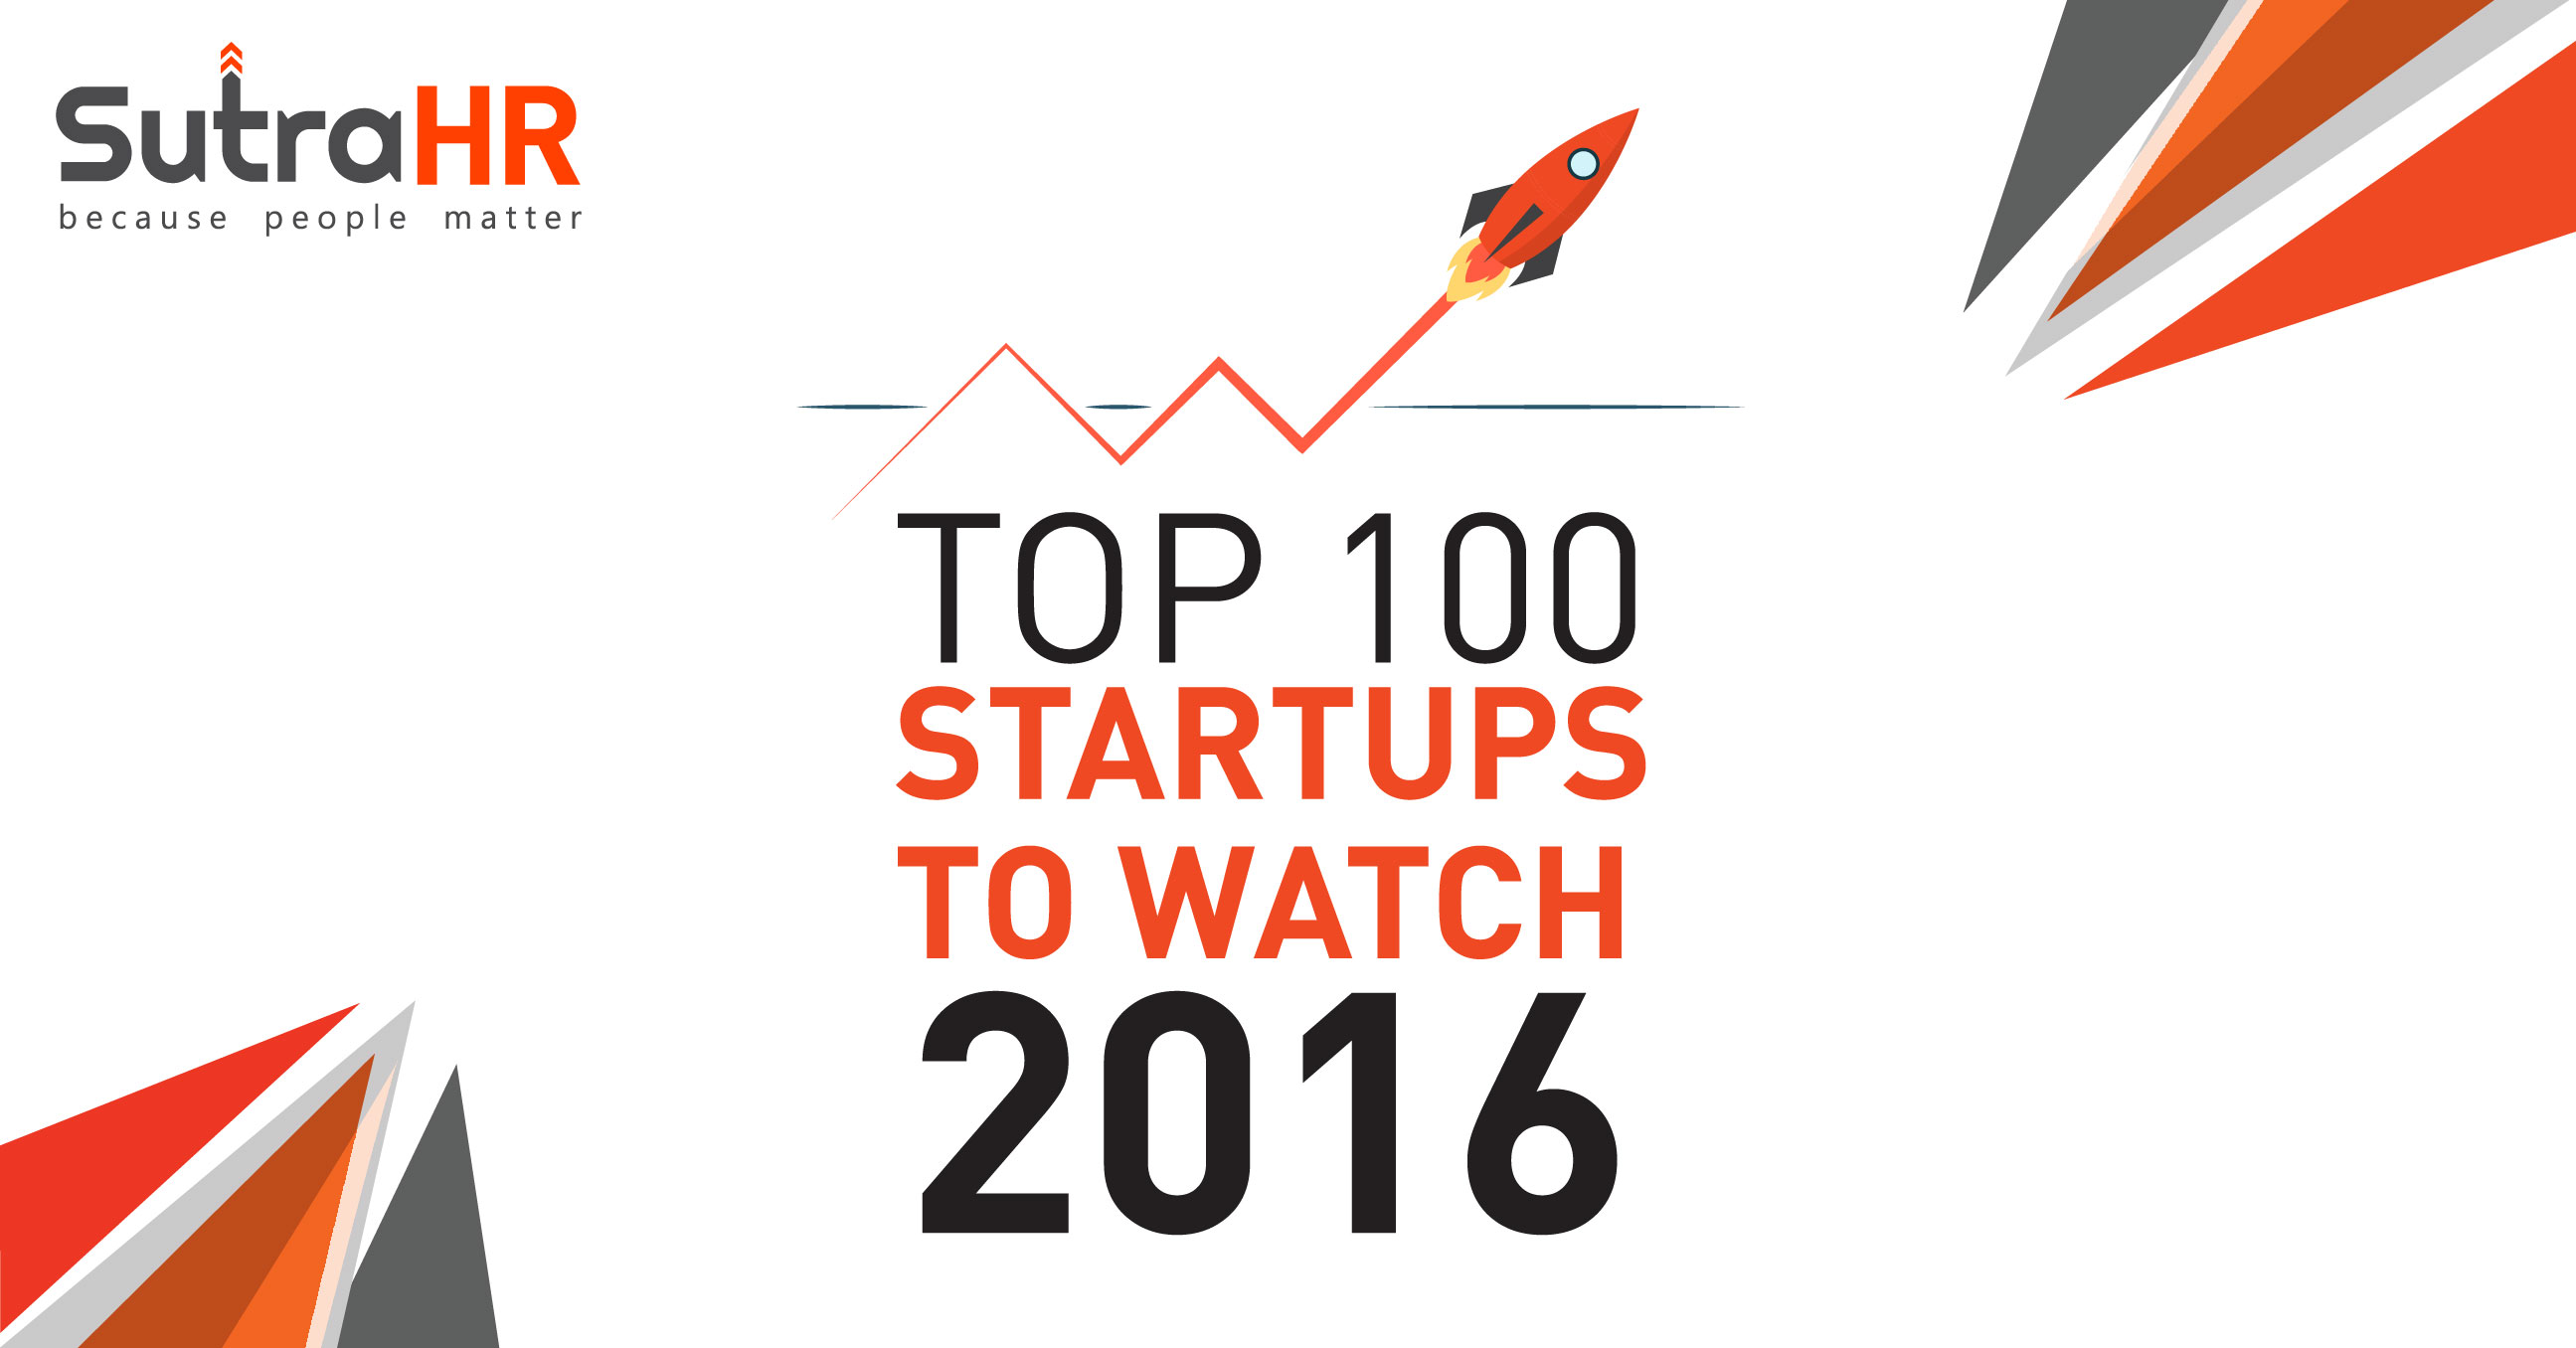 Top 100 Startups in India to Watch in 2016 | List of Best